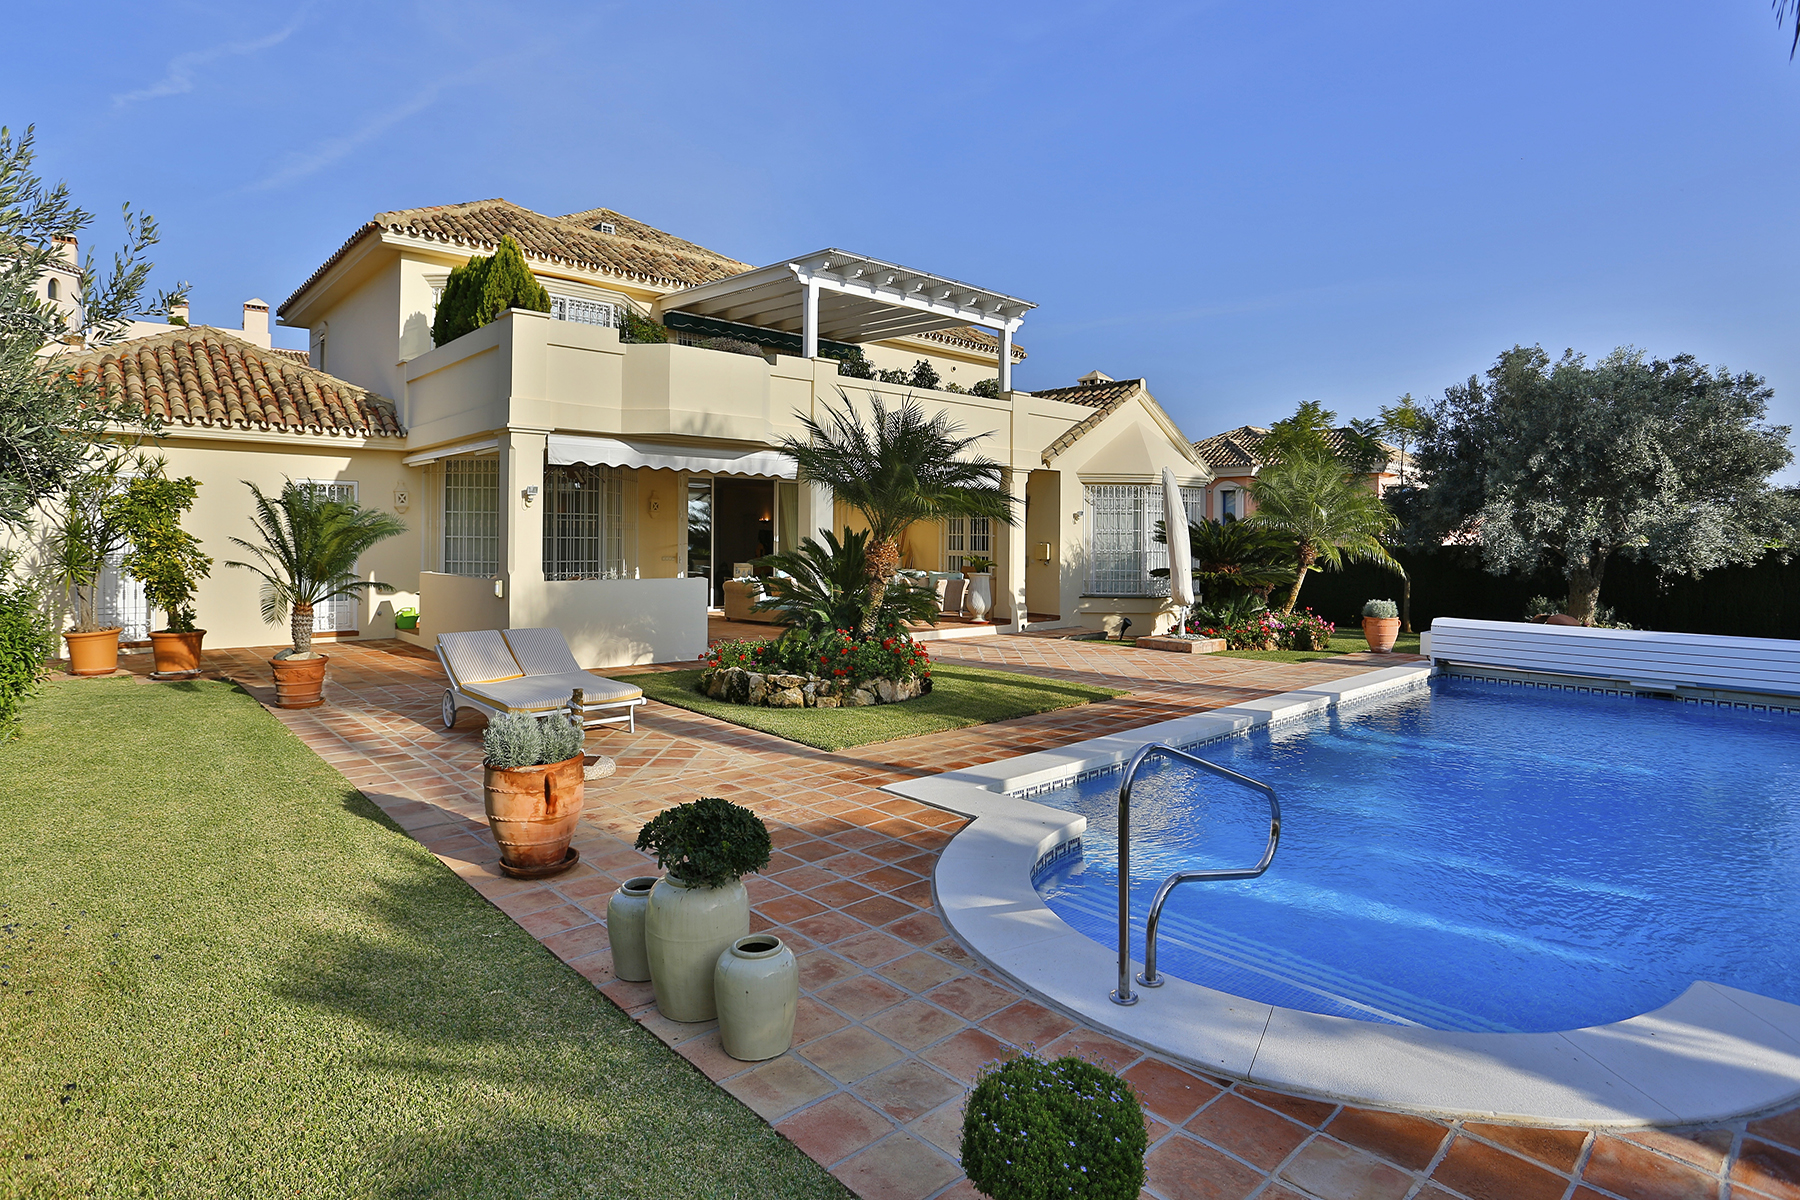 Maison unifamiliale pour l Vente à Impeccable villa with excellent qualities Santa María Golf Marbella, Costa Del Sol, 29600 Espagne